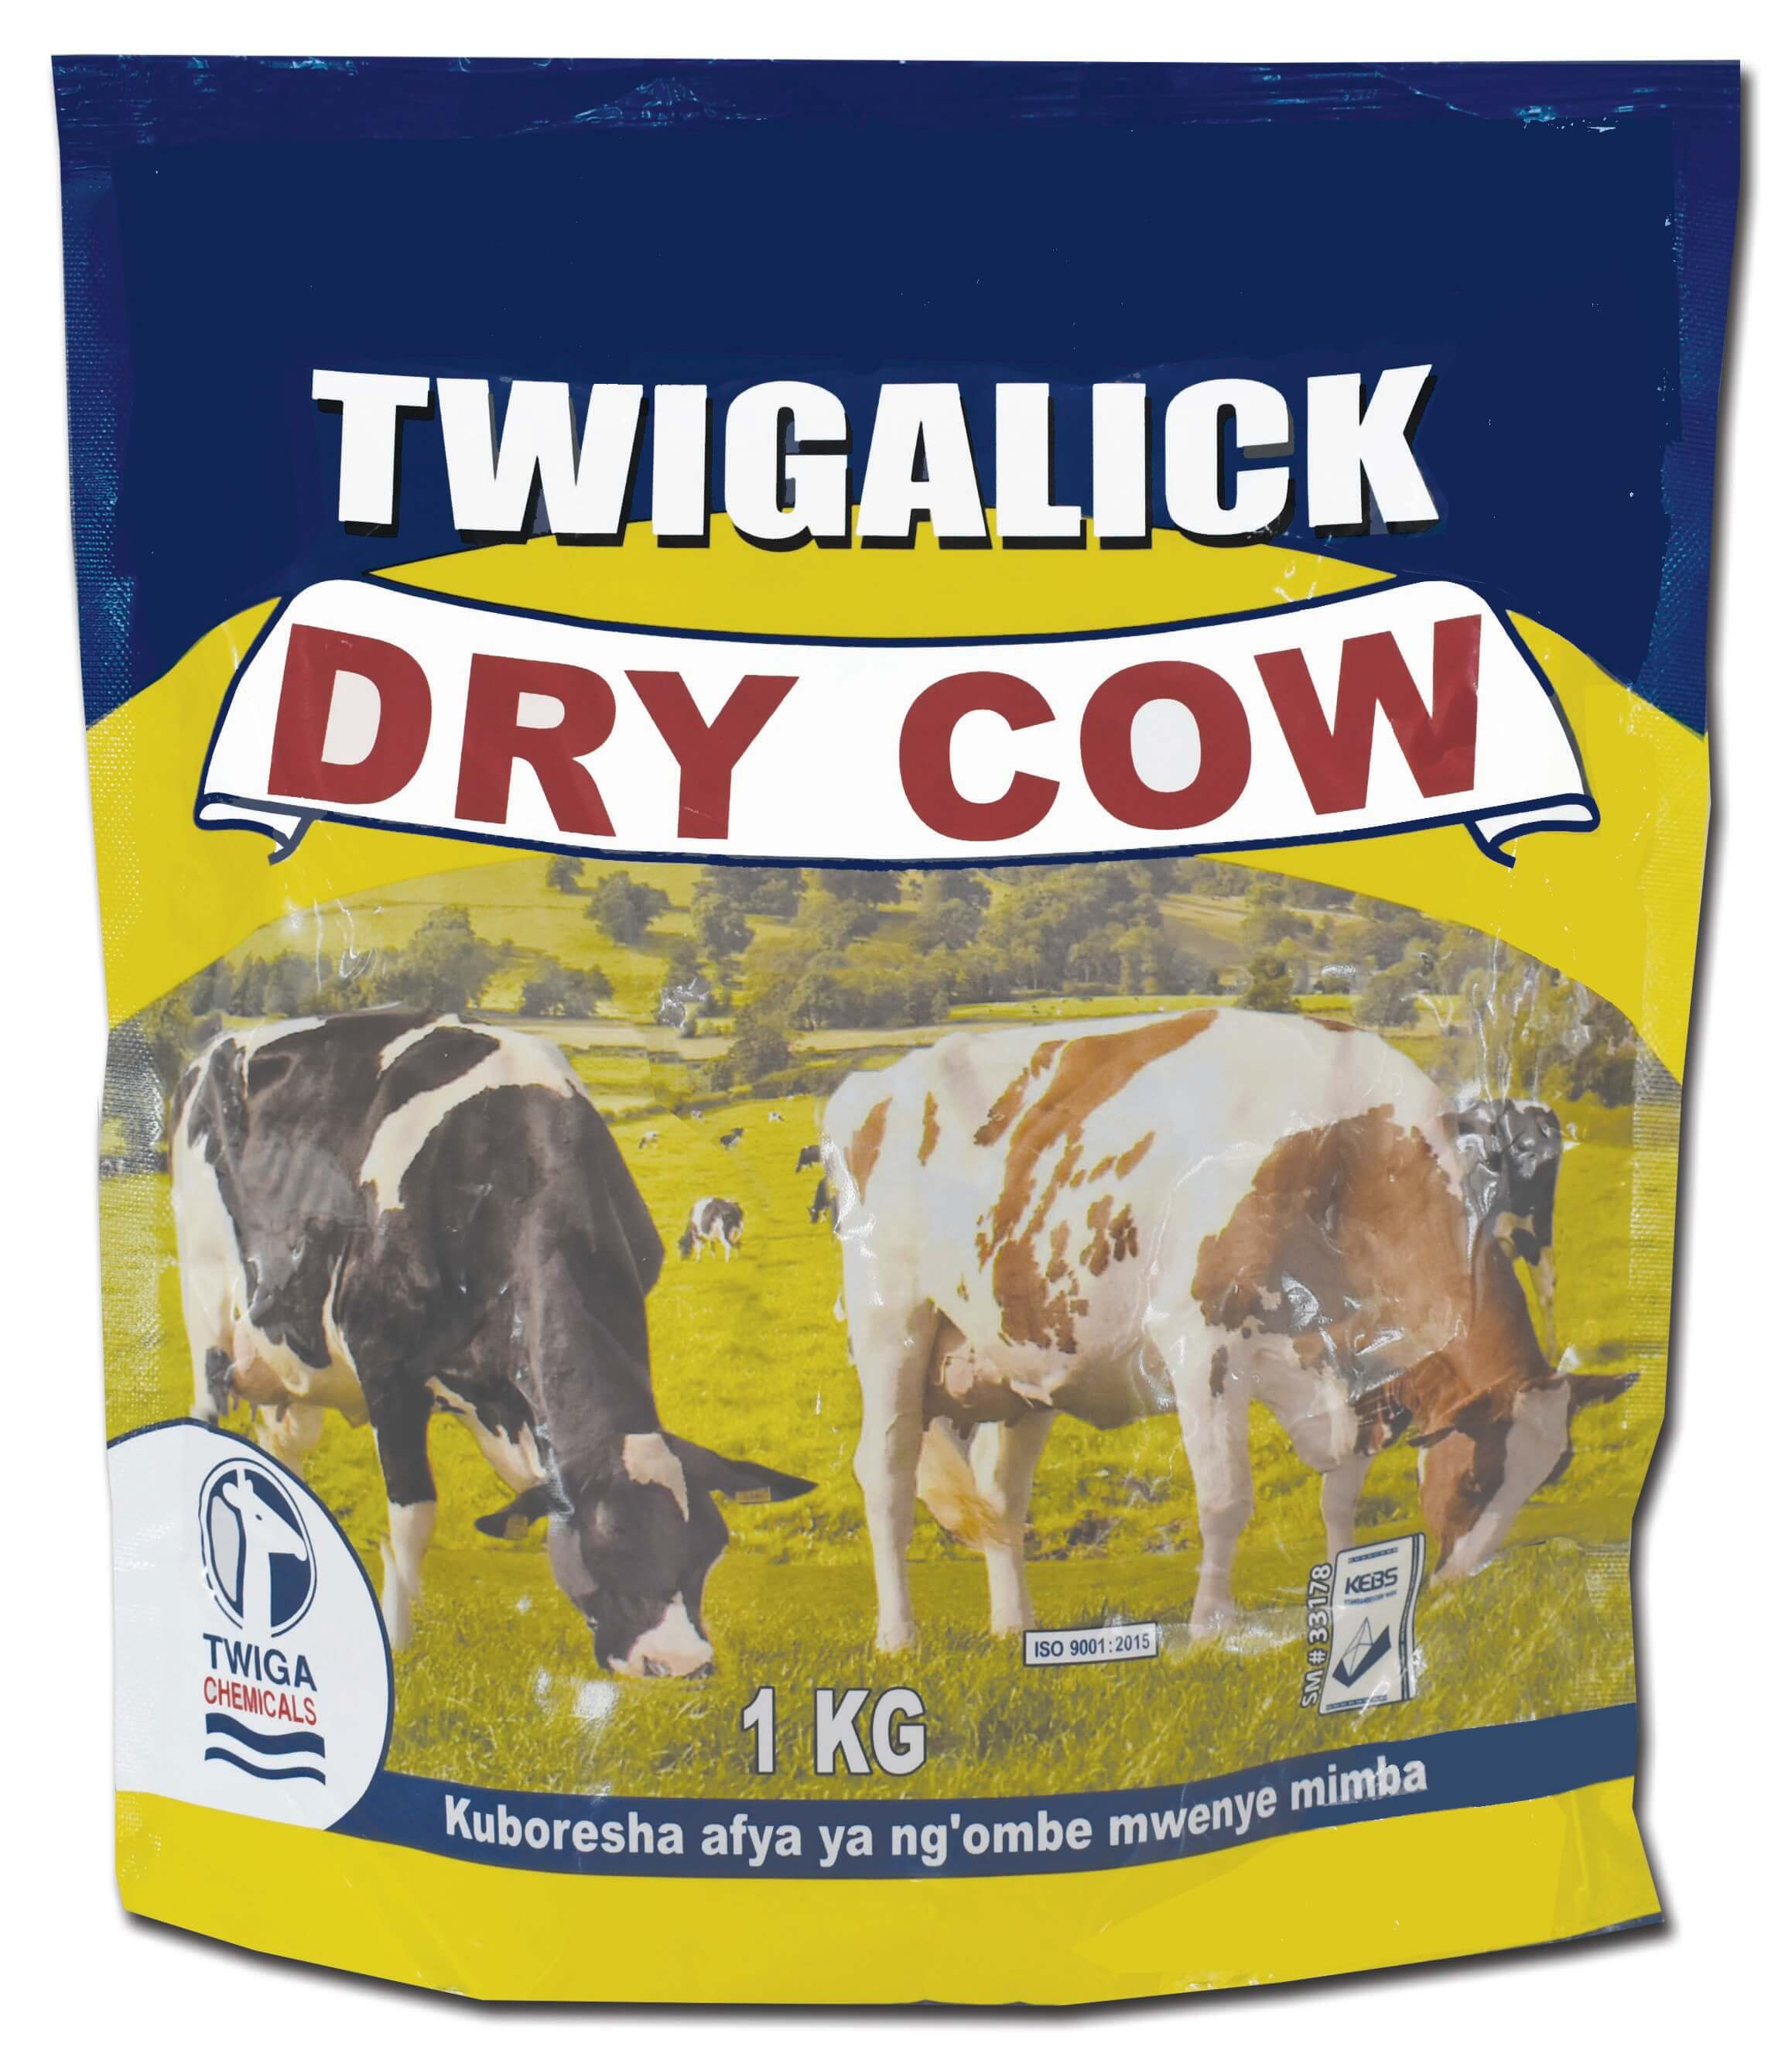 TWIGALICK DRY COW